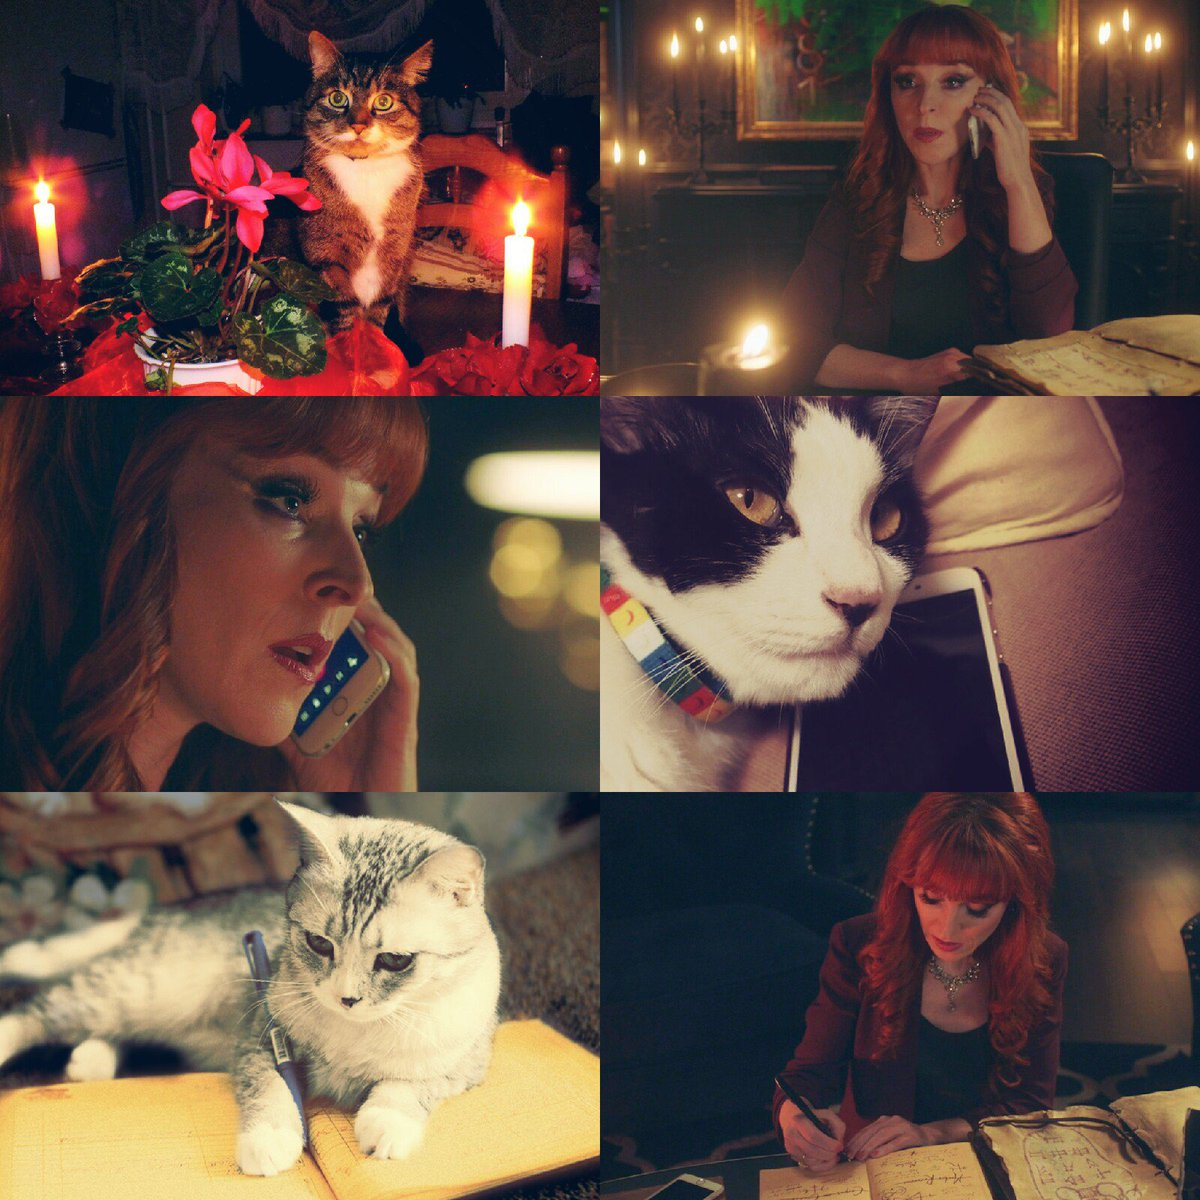 Rowena MacLeod from the episode &quot;Absence&quot; and cats   @RuthieConnell, it&#39;s always such a joy to see you on my screen  Hope you have wonderful day!  #SPNFamily <br>http://pic.twitter.com/x89SyORvHm